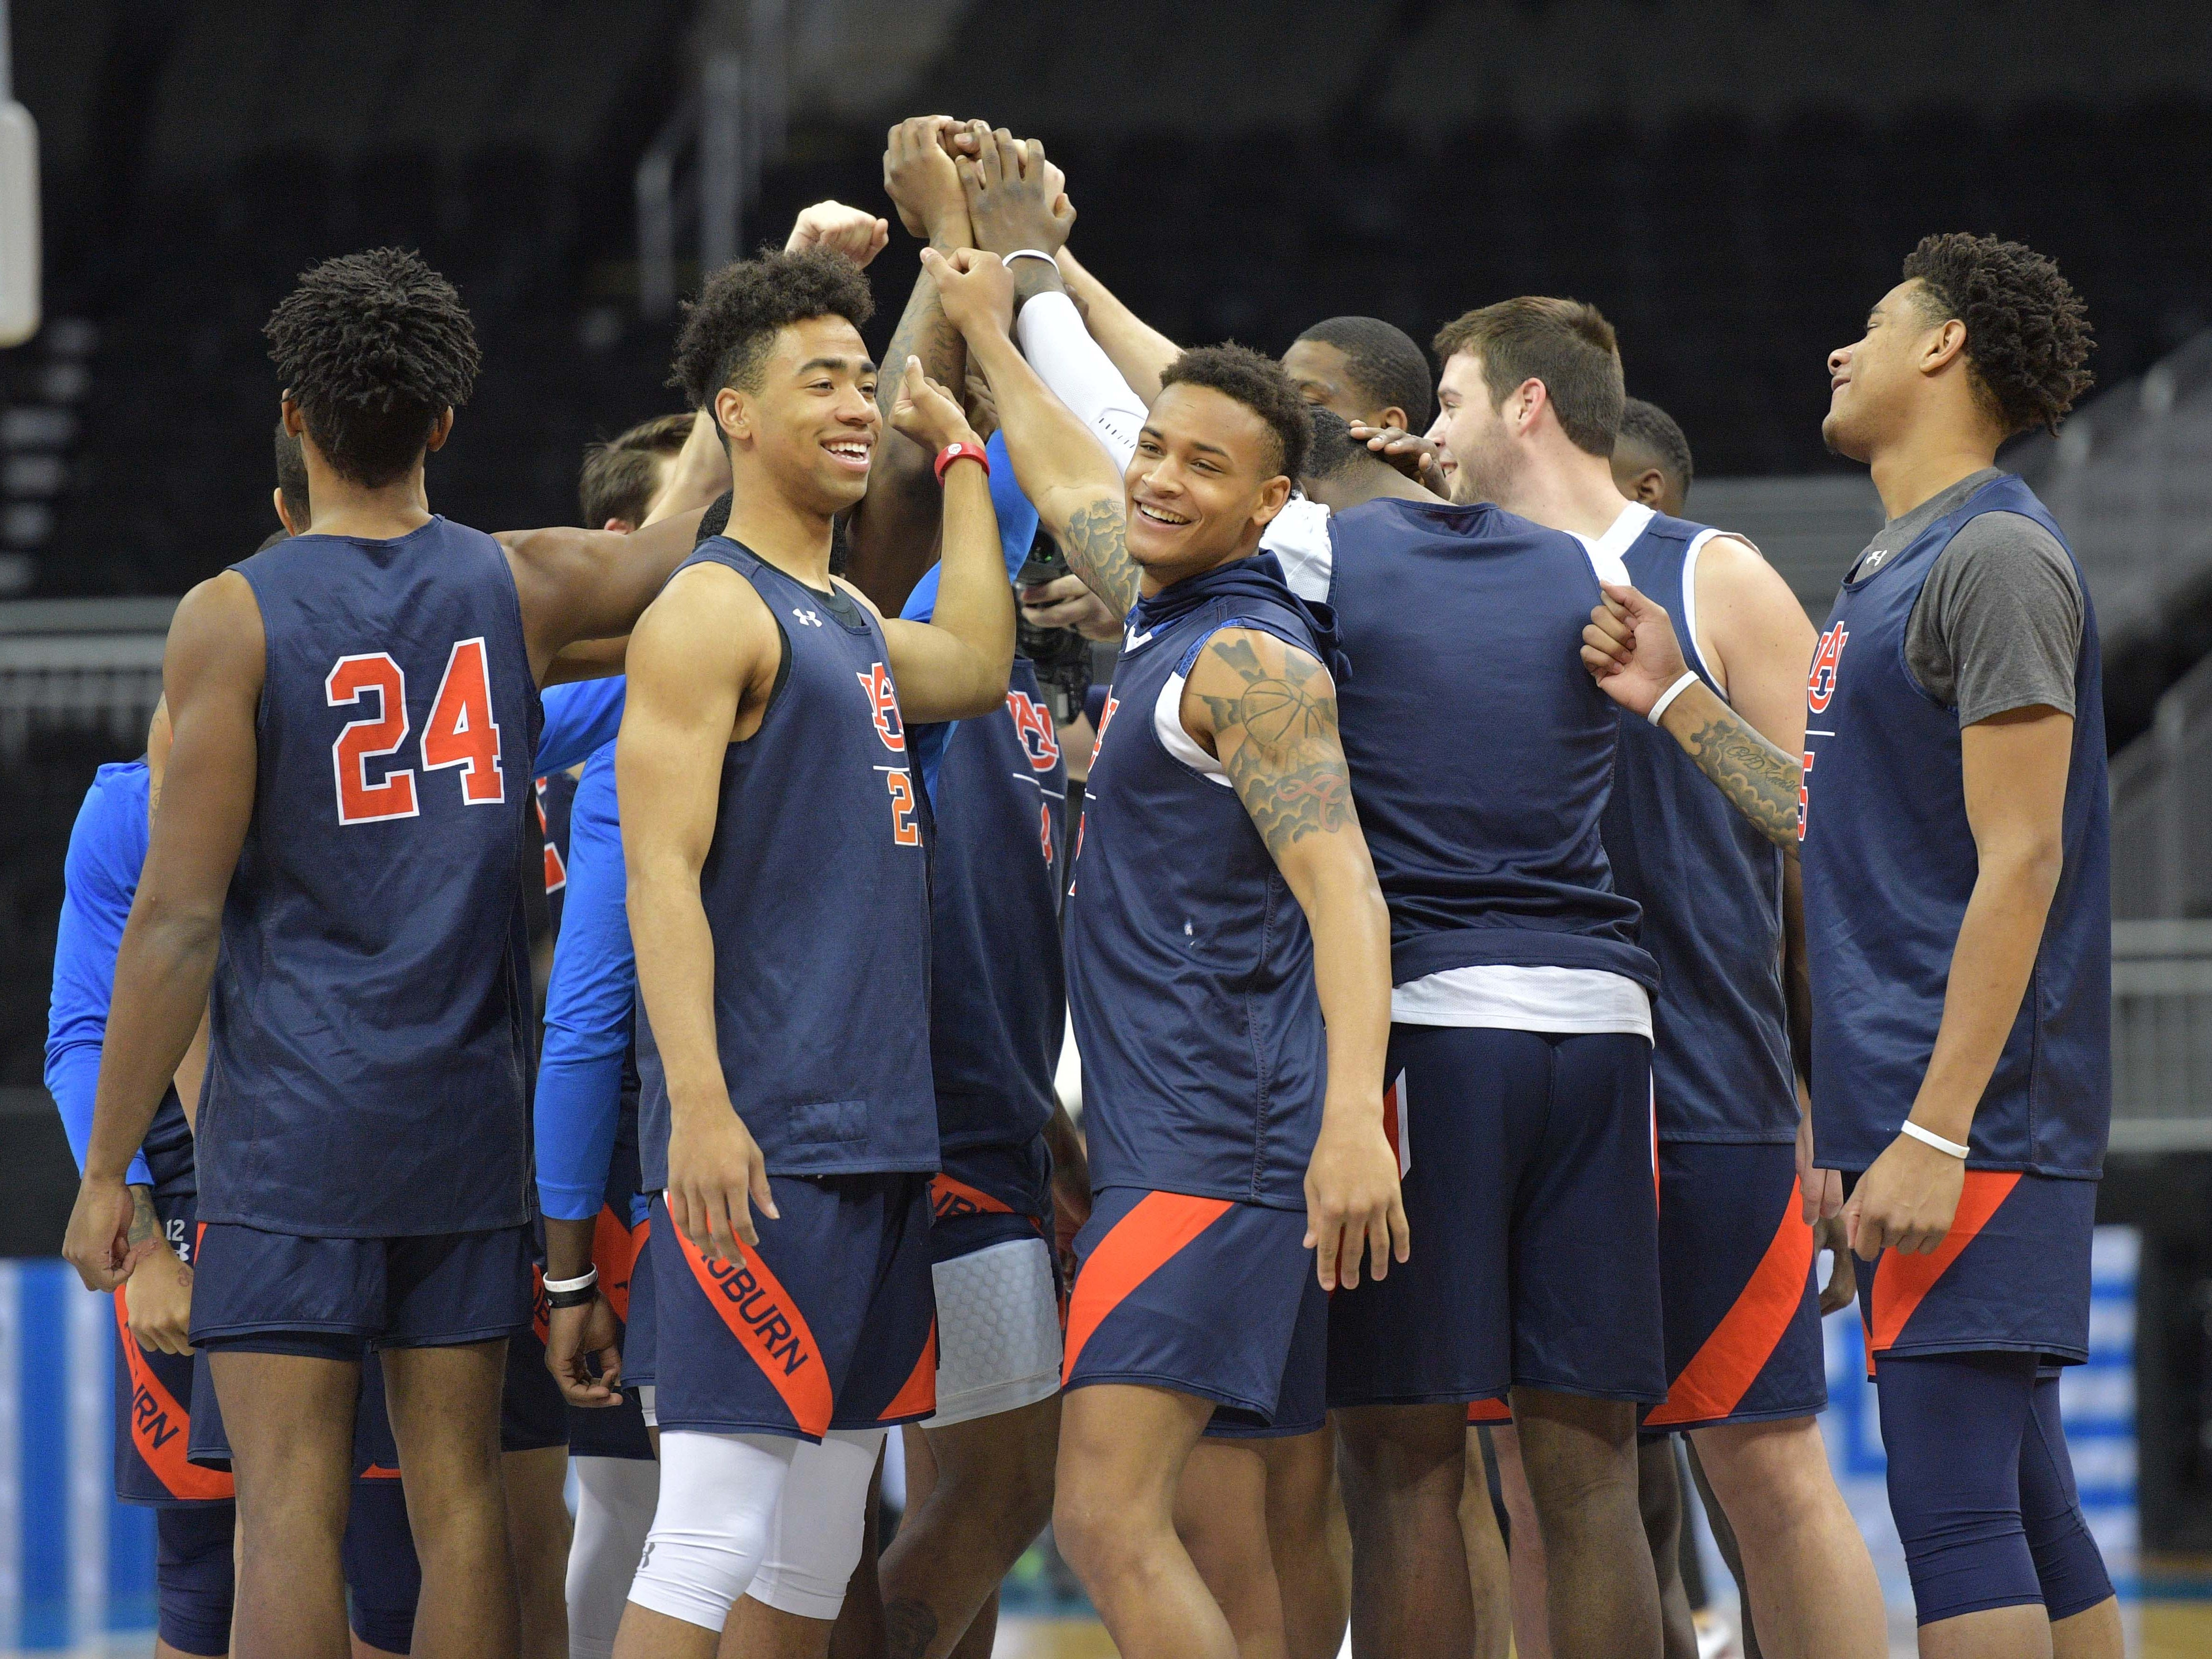 Mar 28, 2019; Kansas City, MO, United States; The Auburn team huddles up during practice for the midwest regional of the 2019 NCAA Tournament at Sprint Center. Mandatory Credit: Denny Medley-USA TODAY Sports